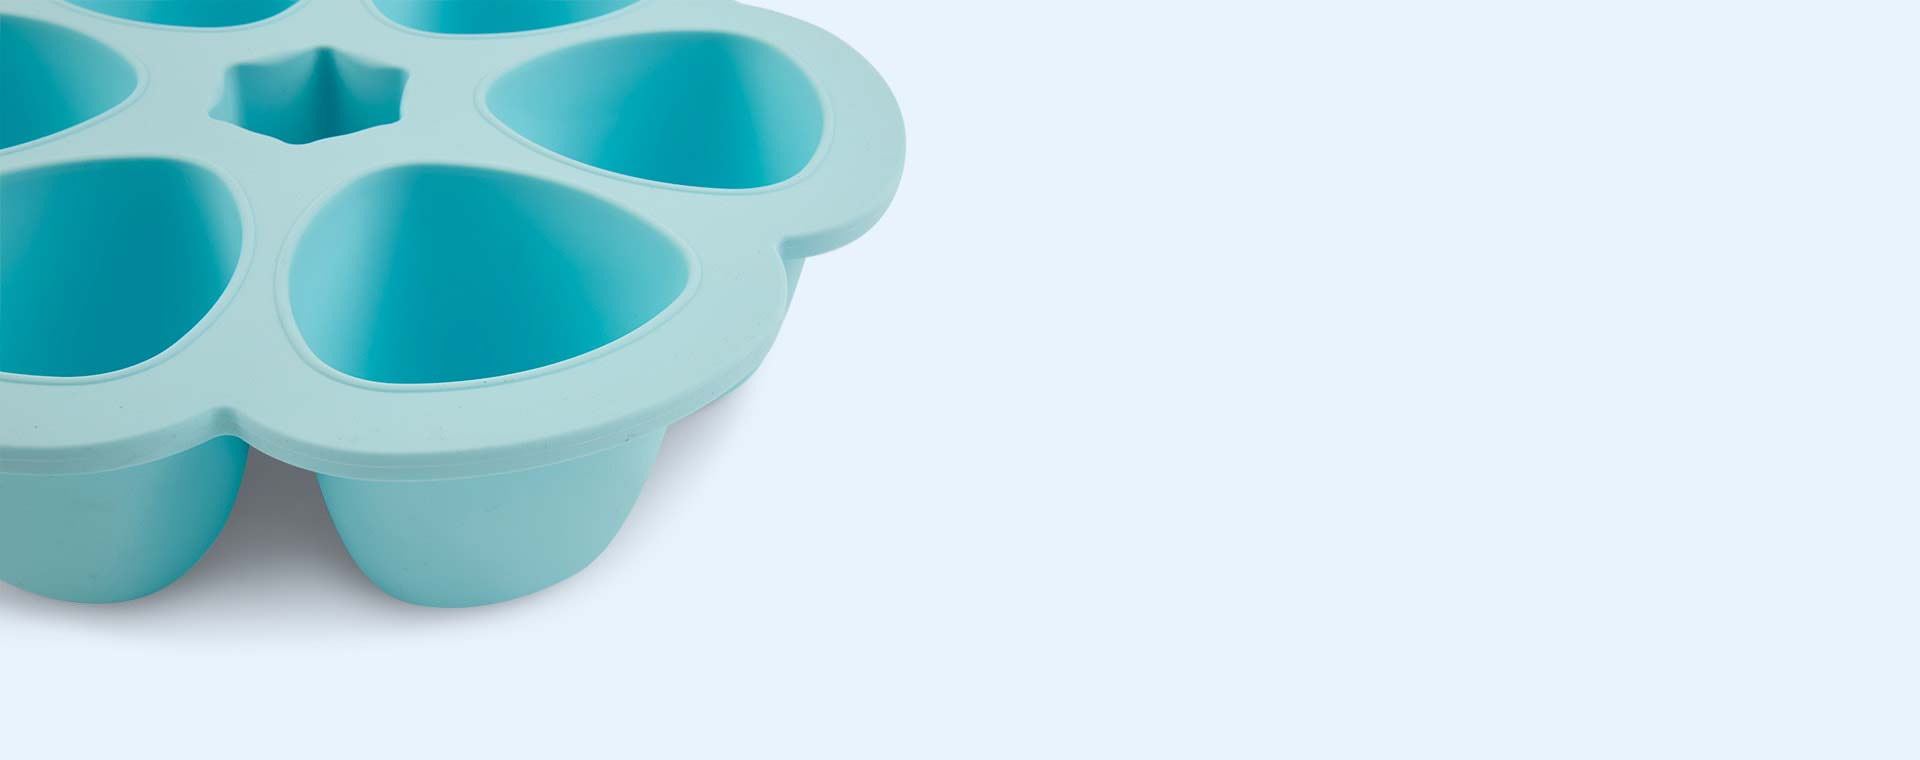 Blue Beaba Multi Portion Food Containers - 6 x 150ml